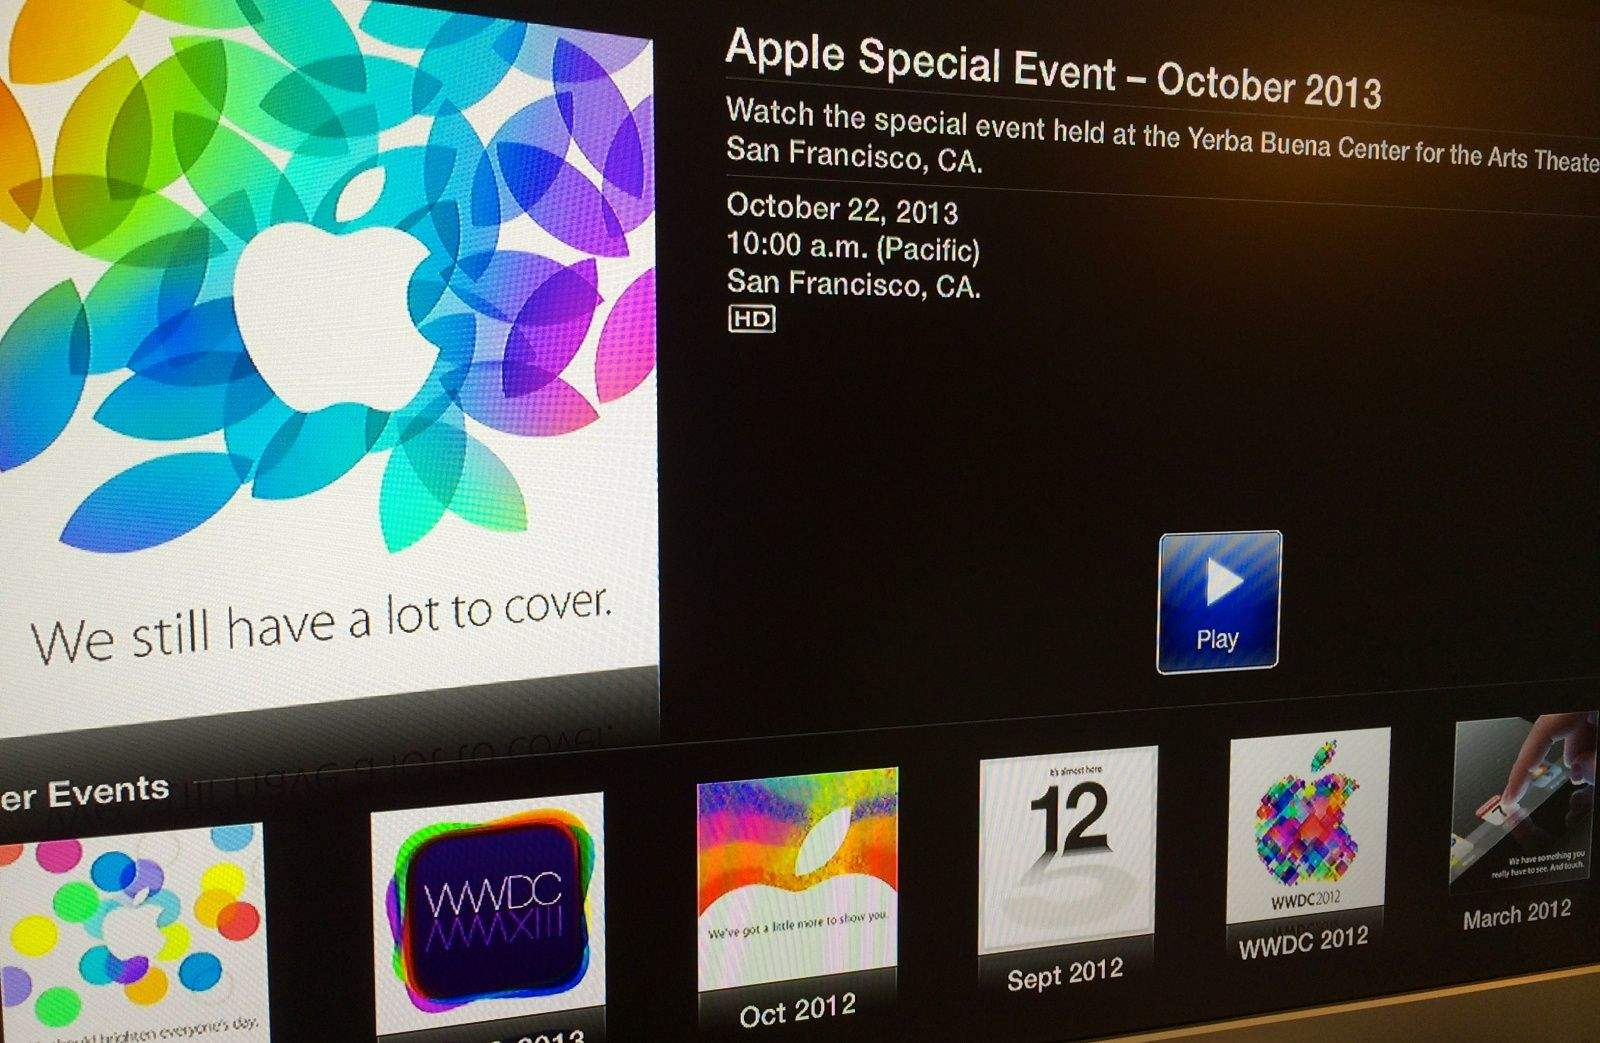 Apple-TV-special-event-Oct-2013